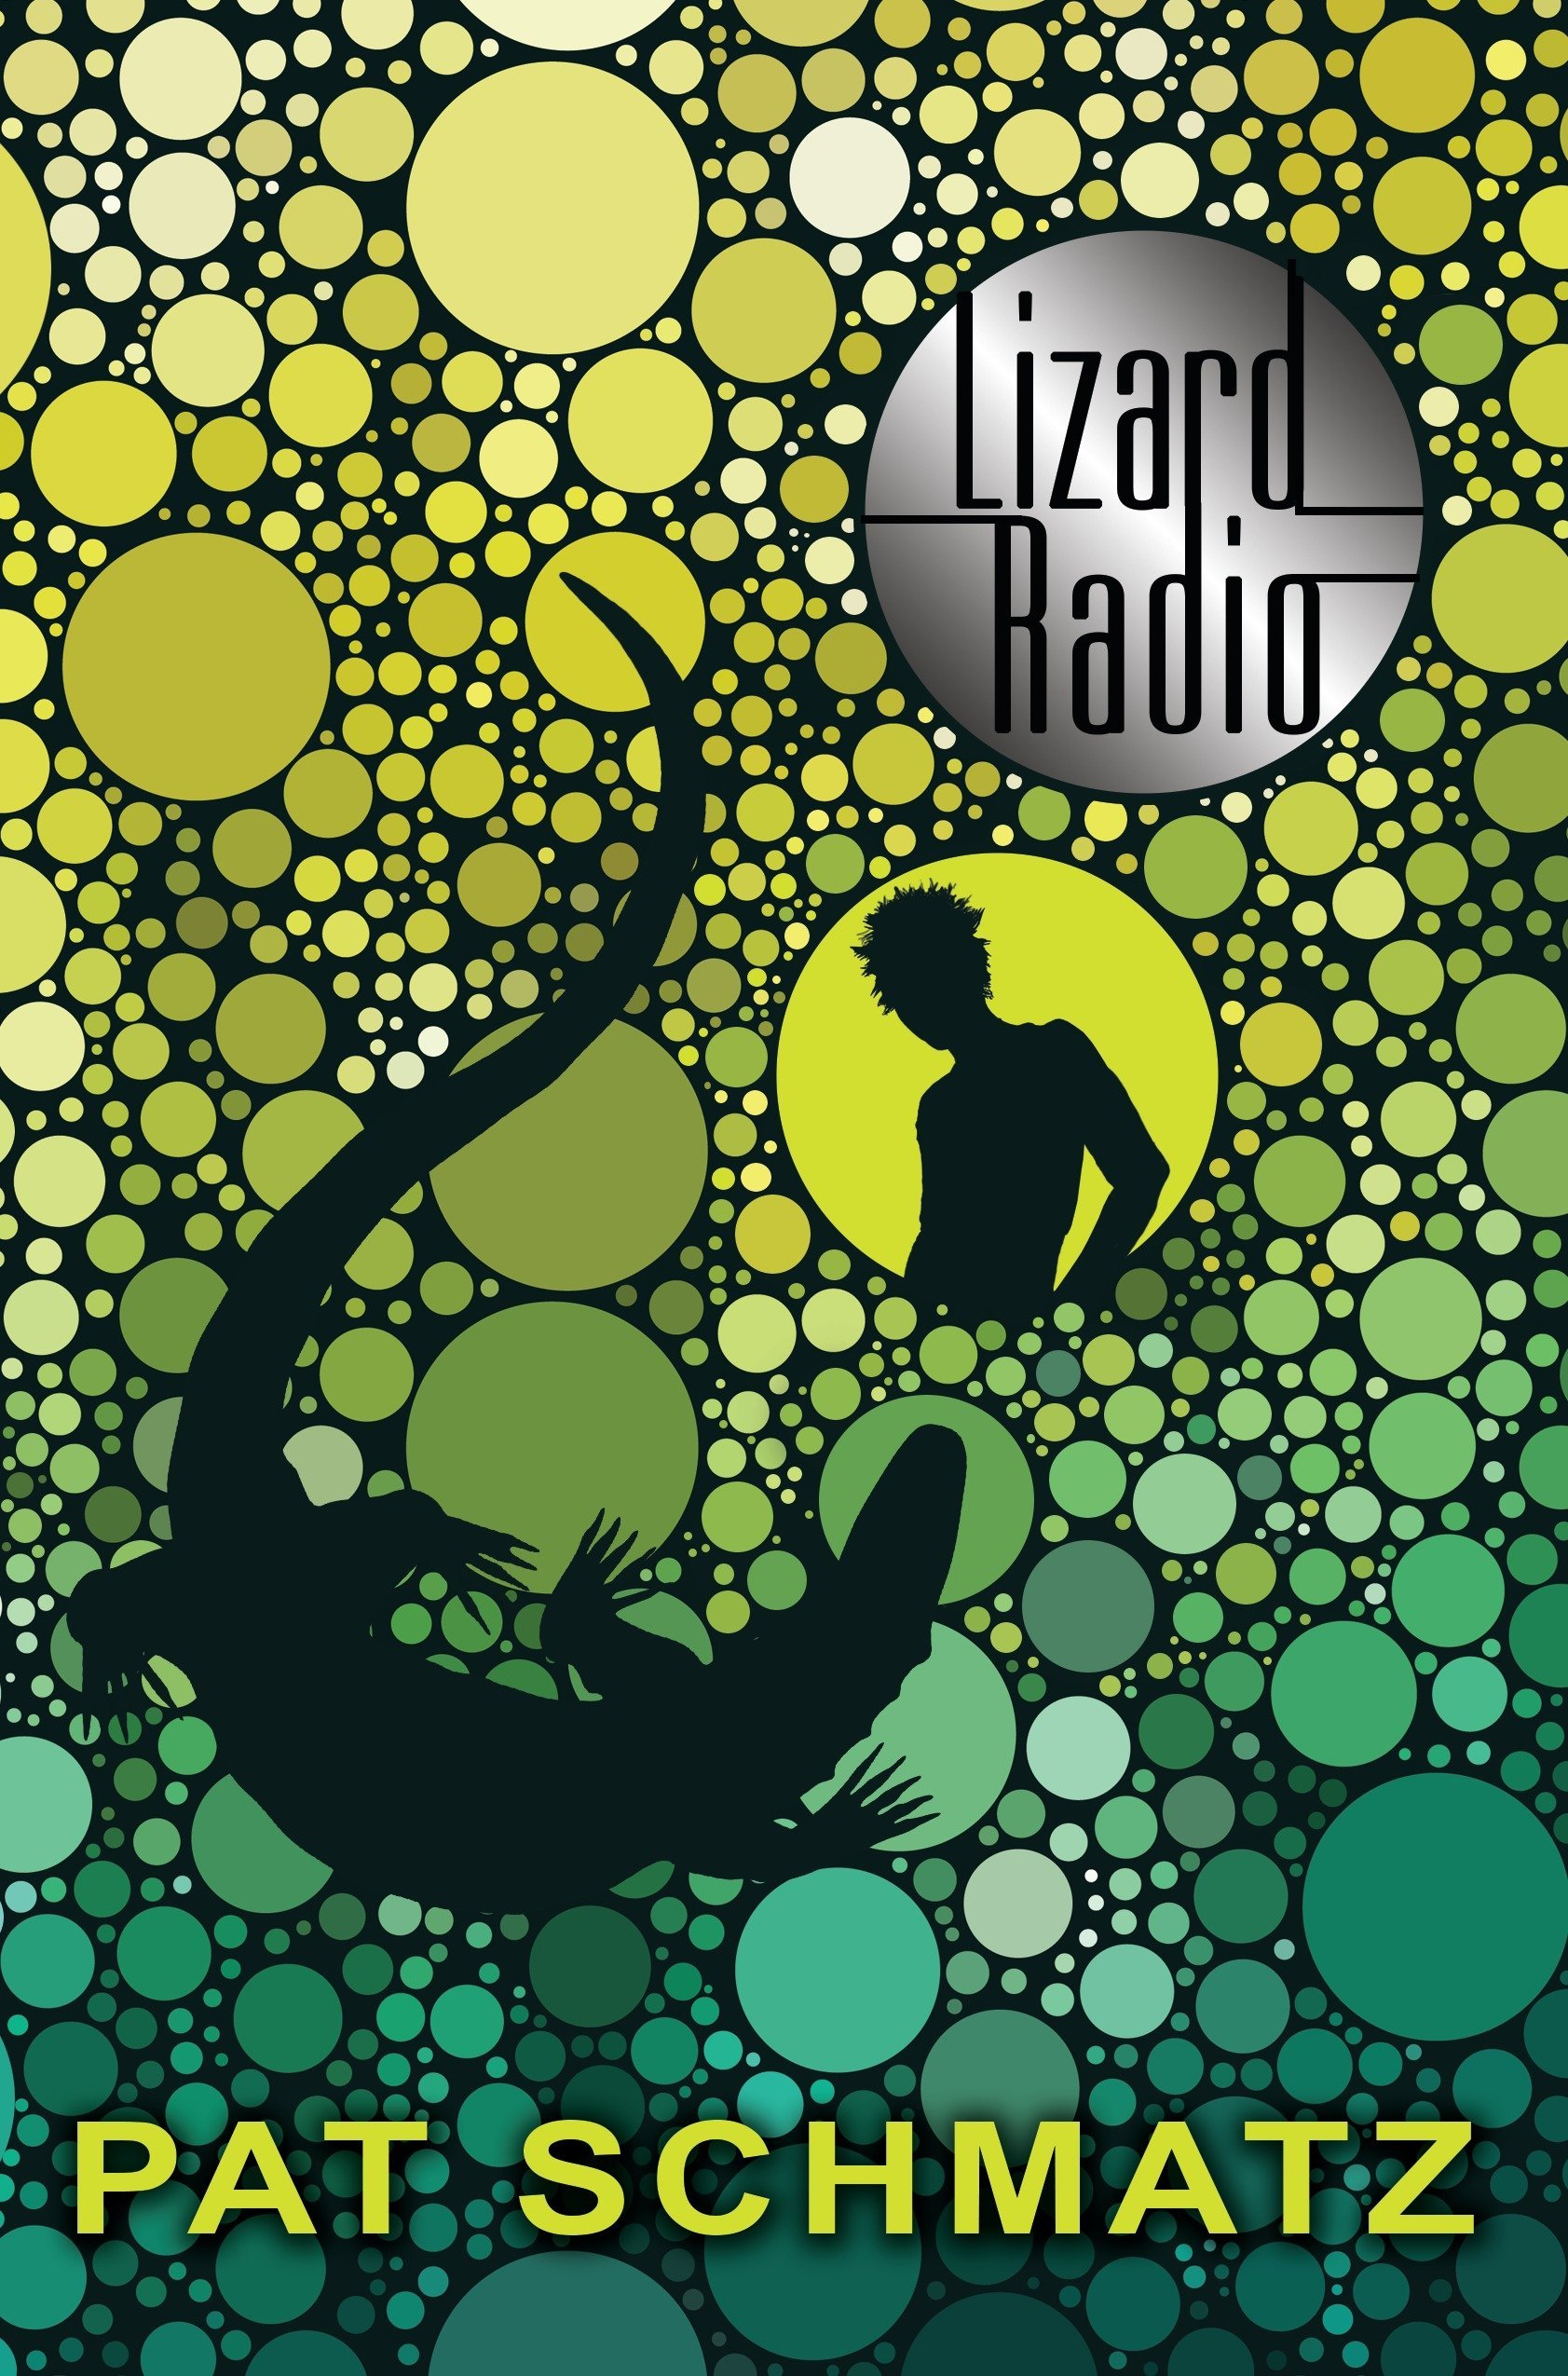 Image result for lizard radio